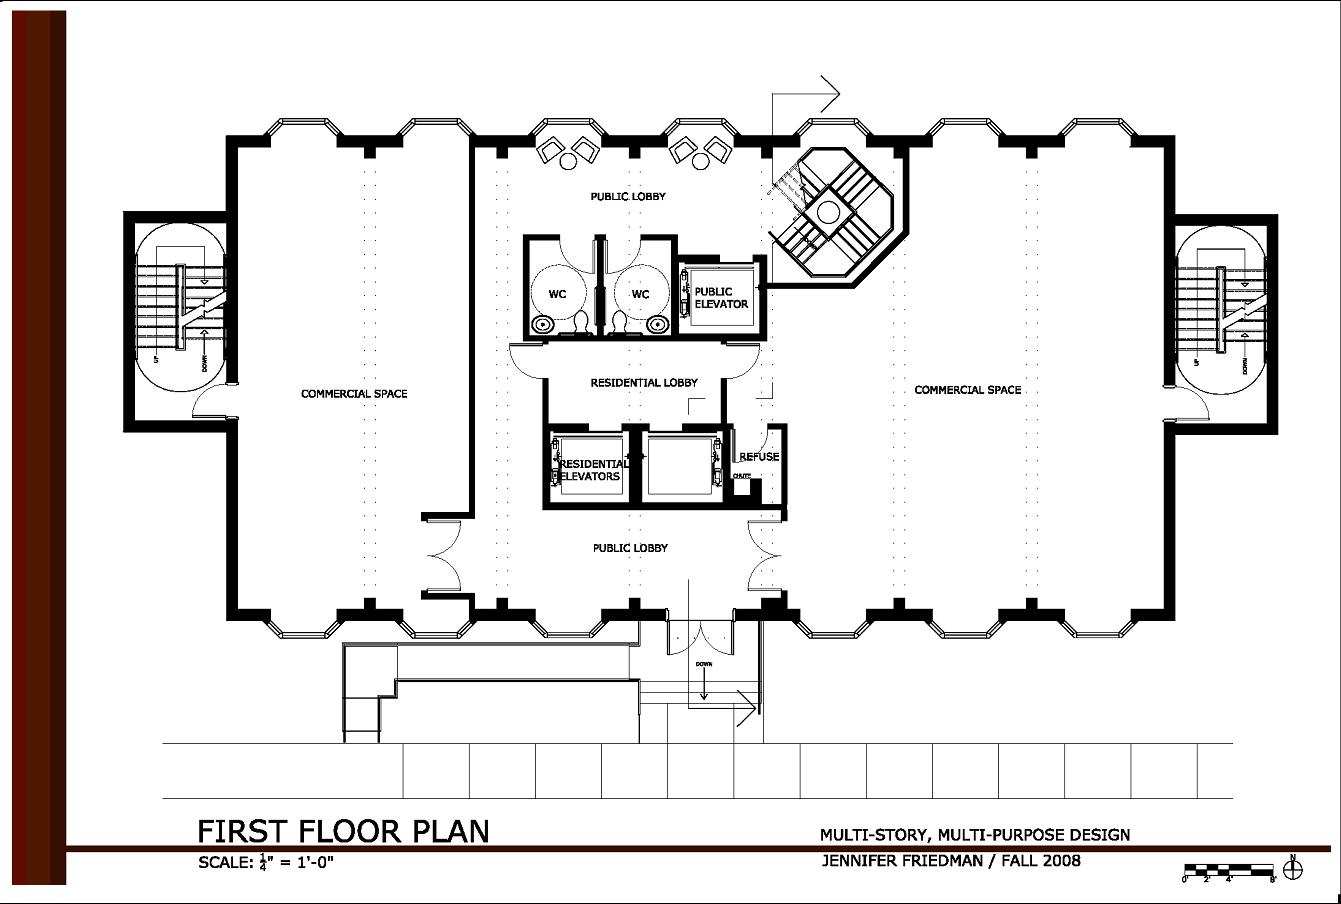 15 small two story office building design images two for Small commercial building plans